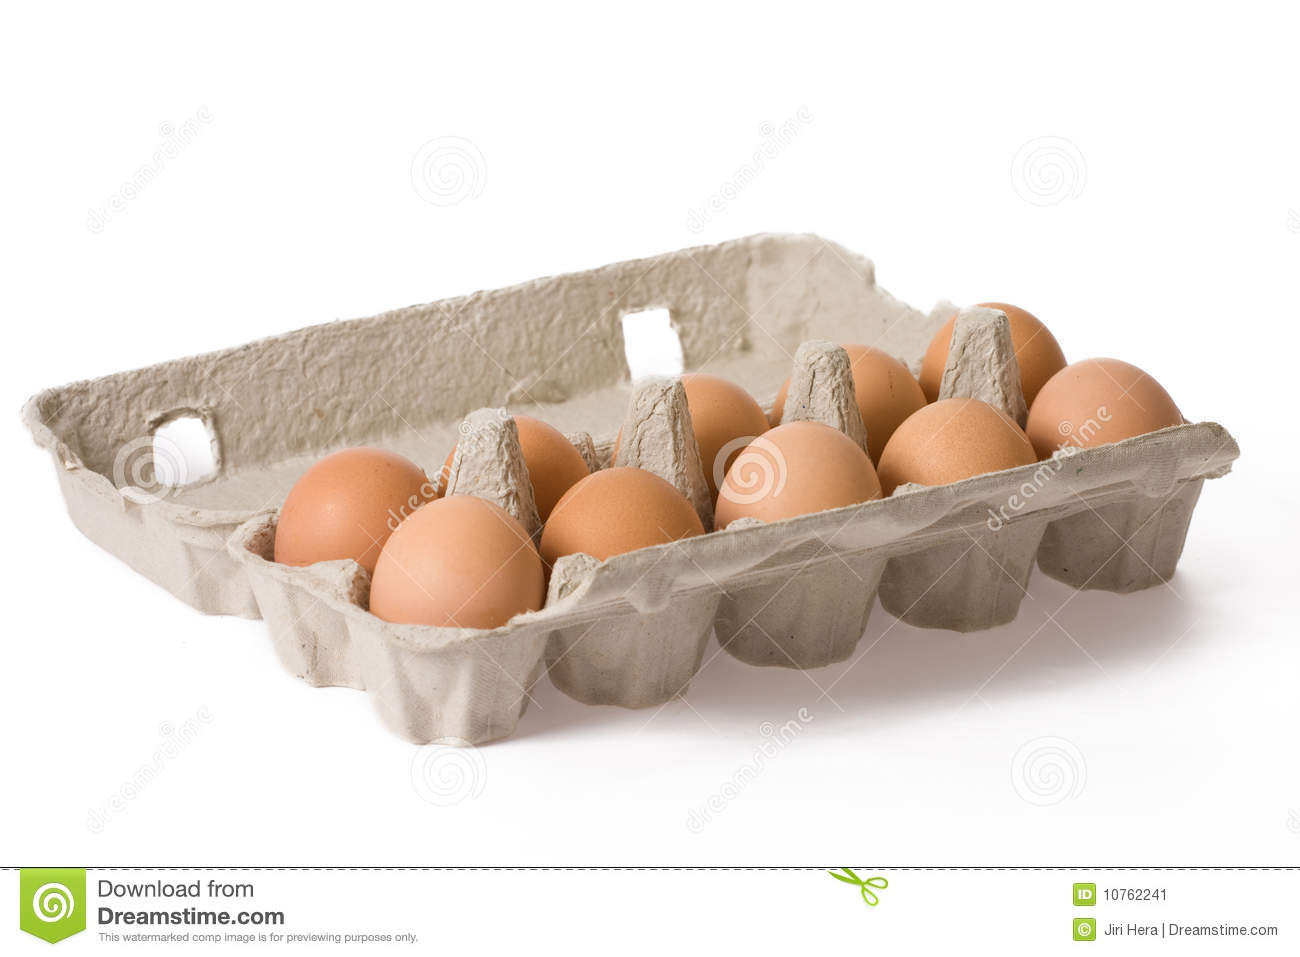 Eggs in paper egg carton